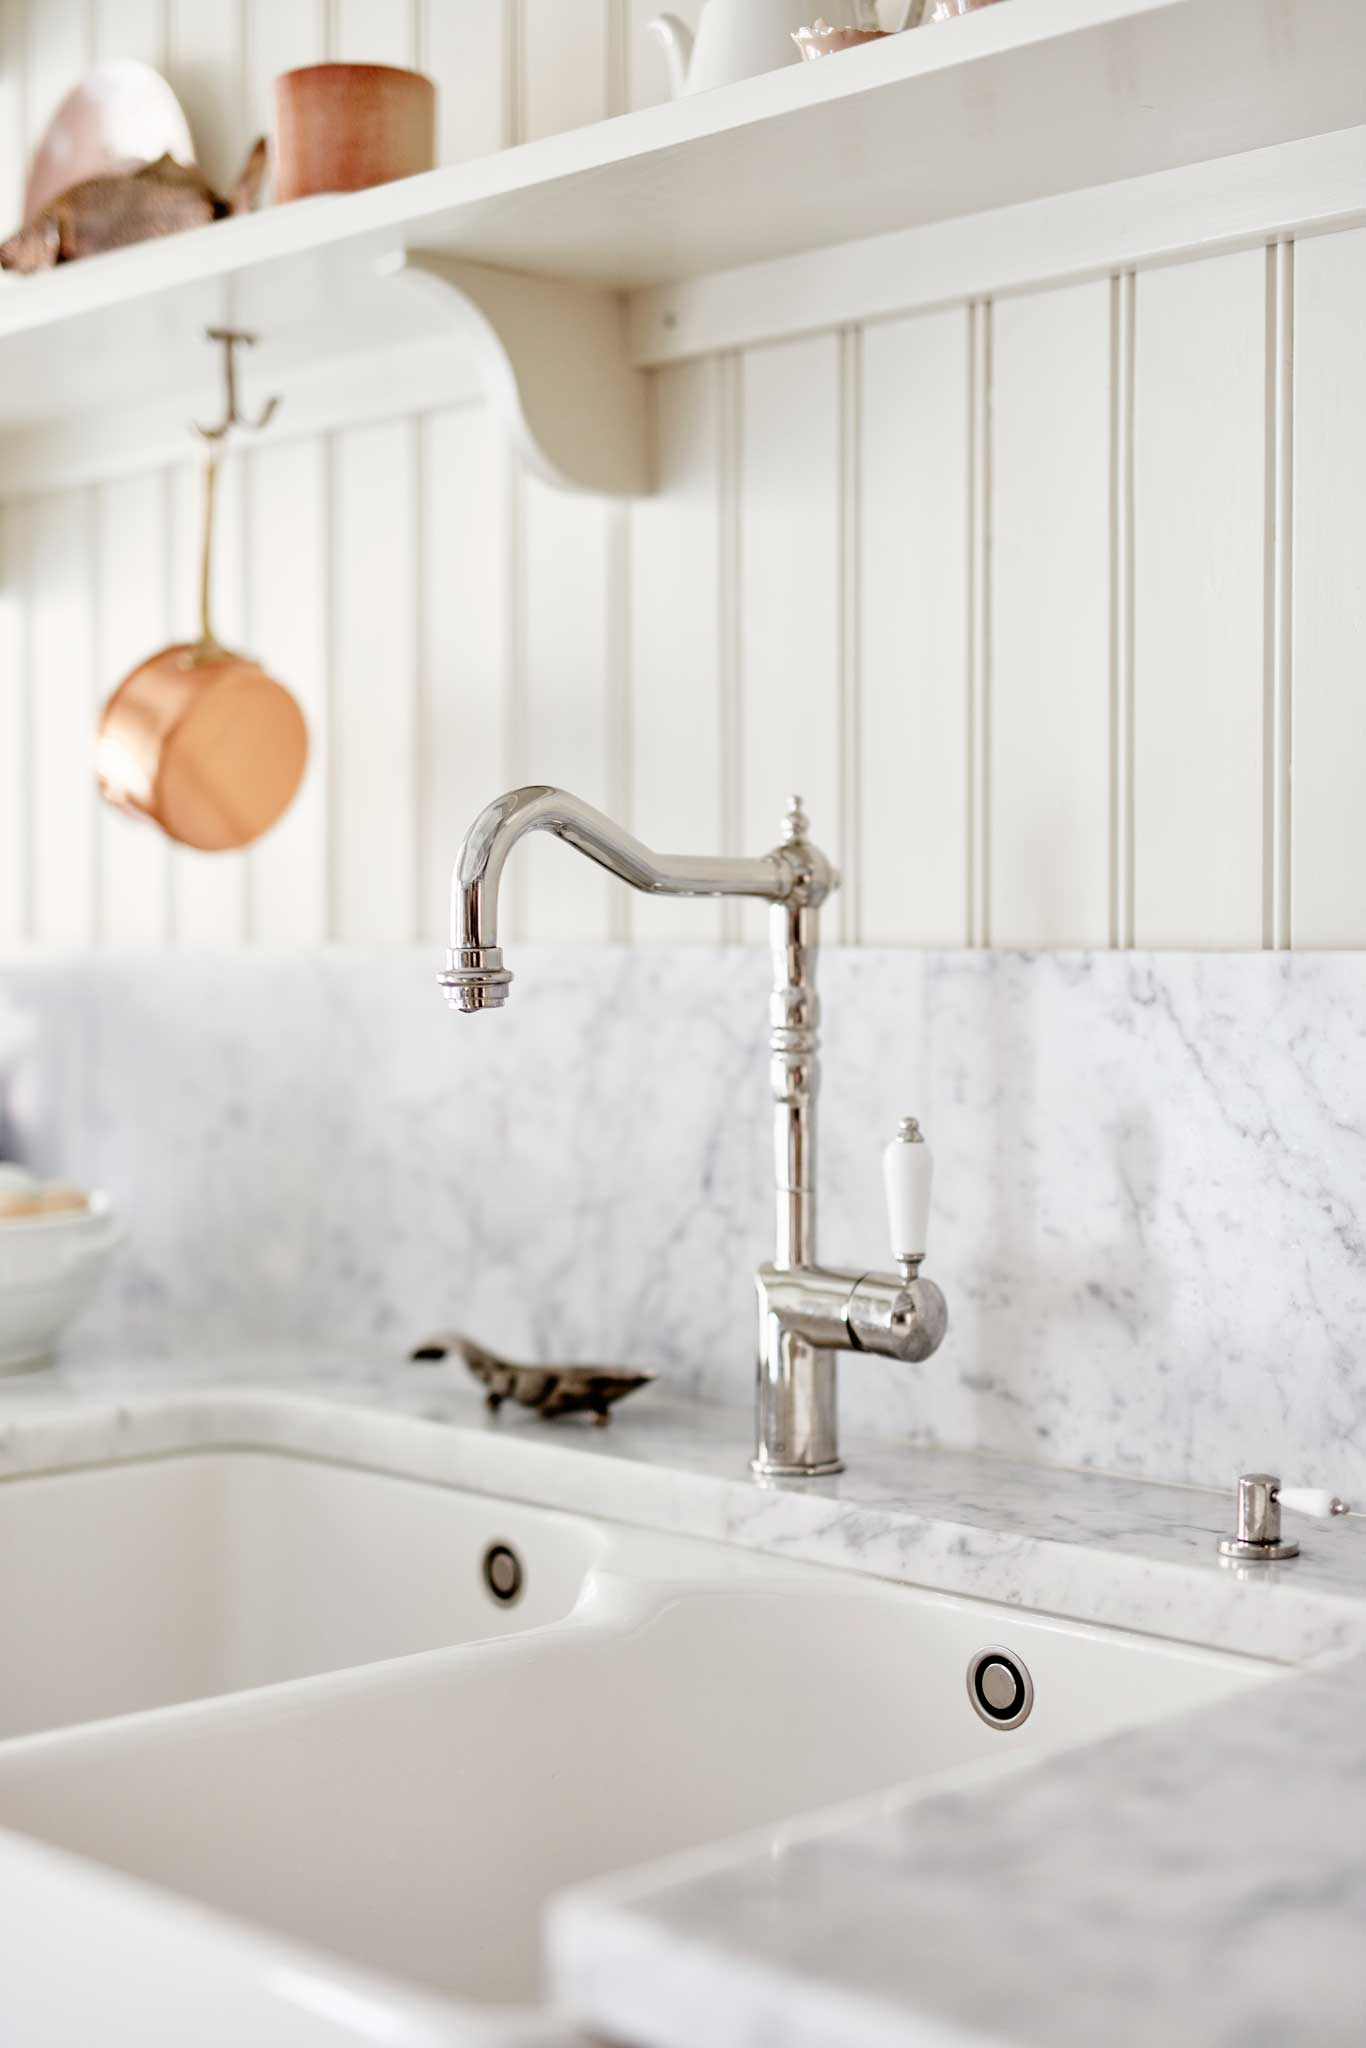 Cream colored Scandinavian Shaker Kitchen old-fashioned tap